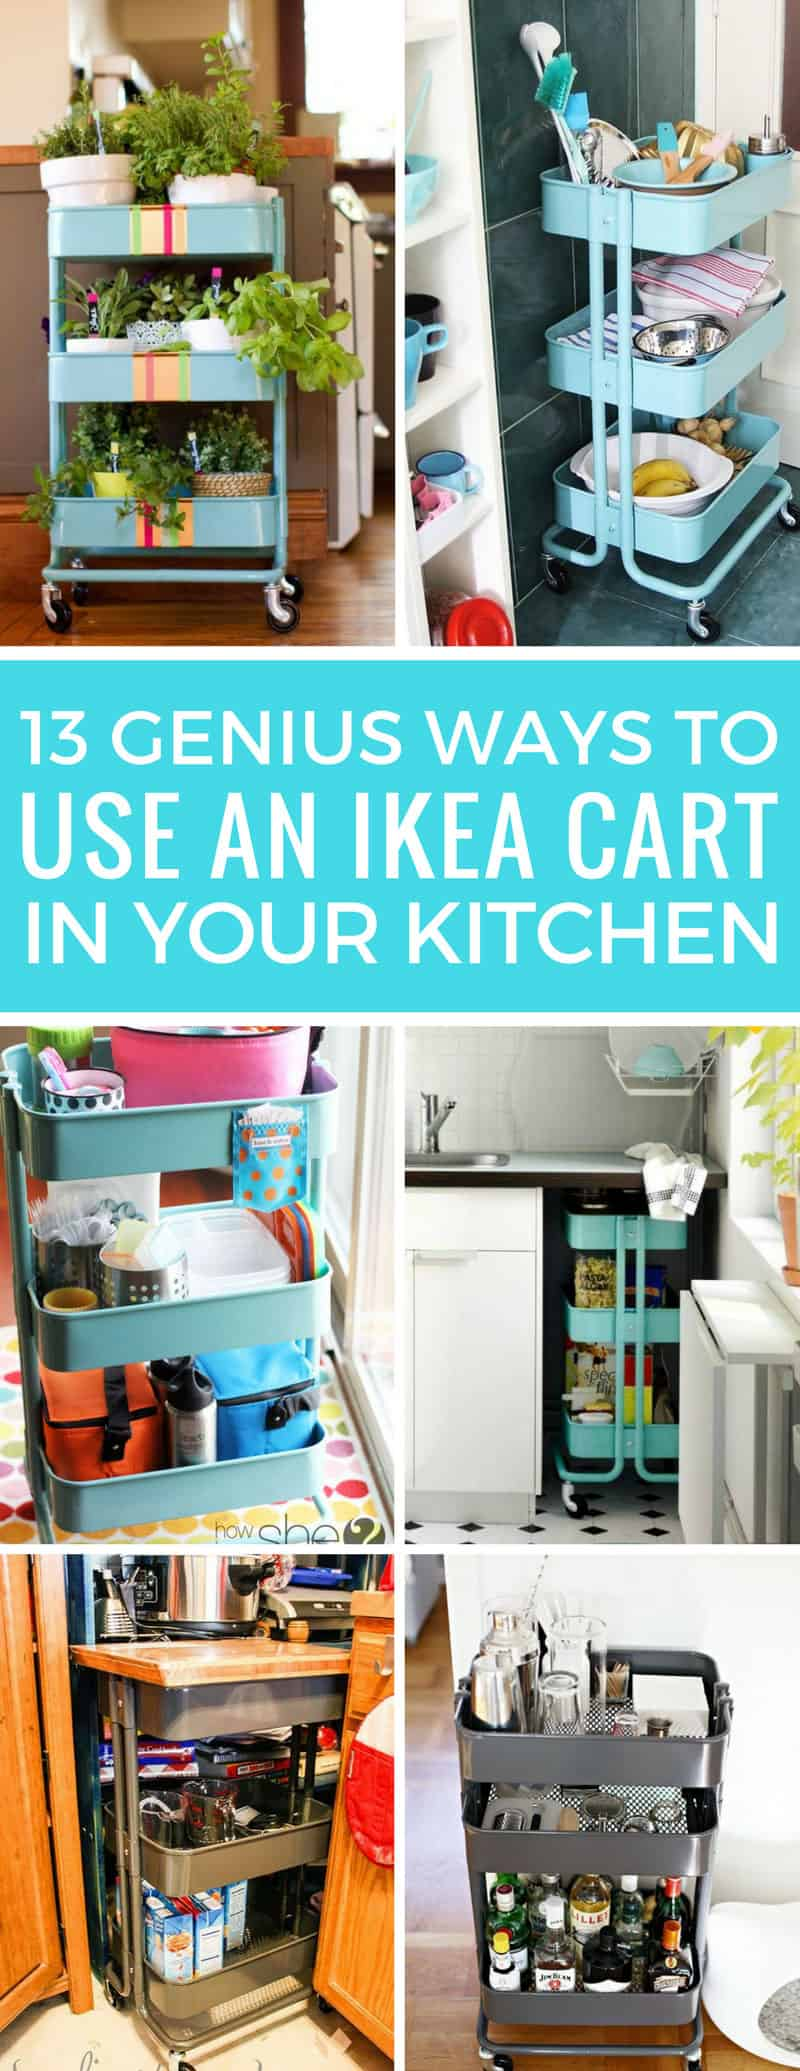 Who knew there were so many GENIUS ways to use the IKEA Raskog cart in the kitchen! I might need to buy two!